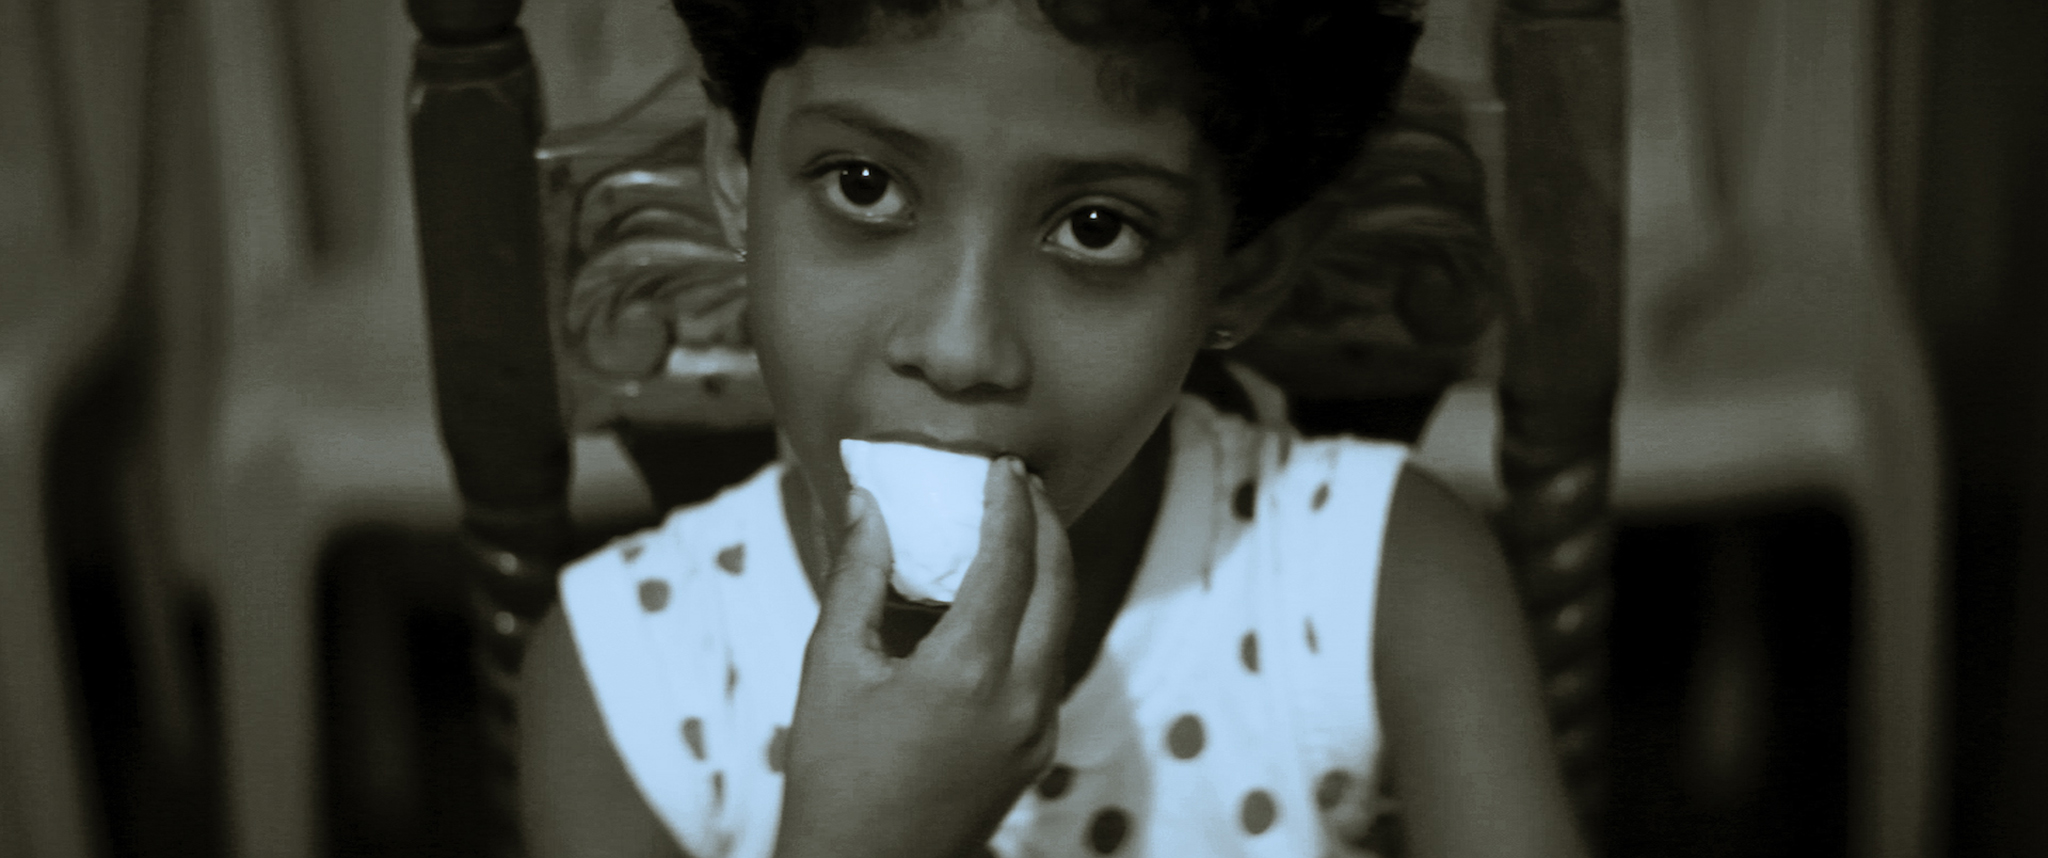 A child eats a piece of food.